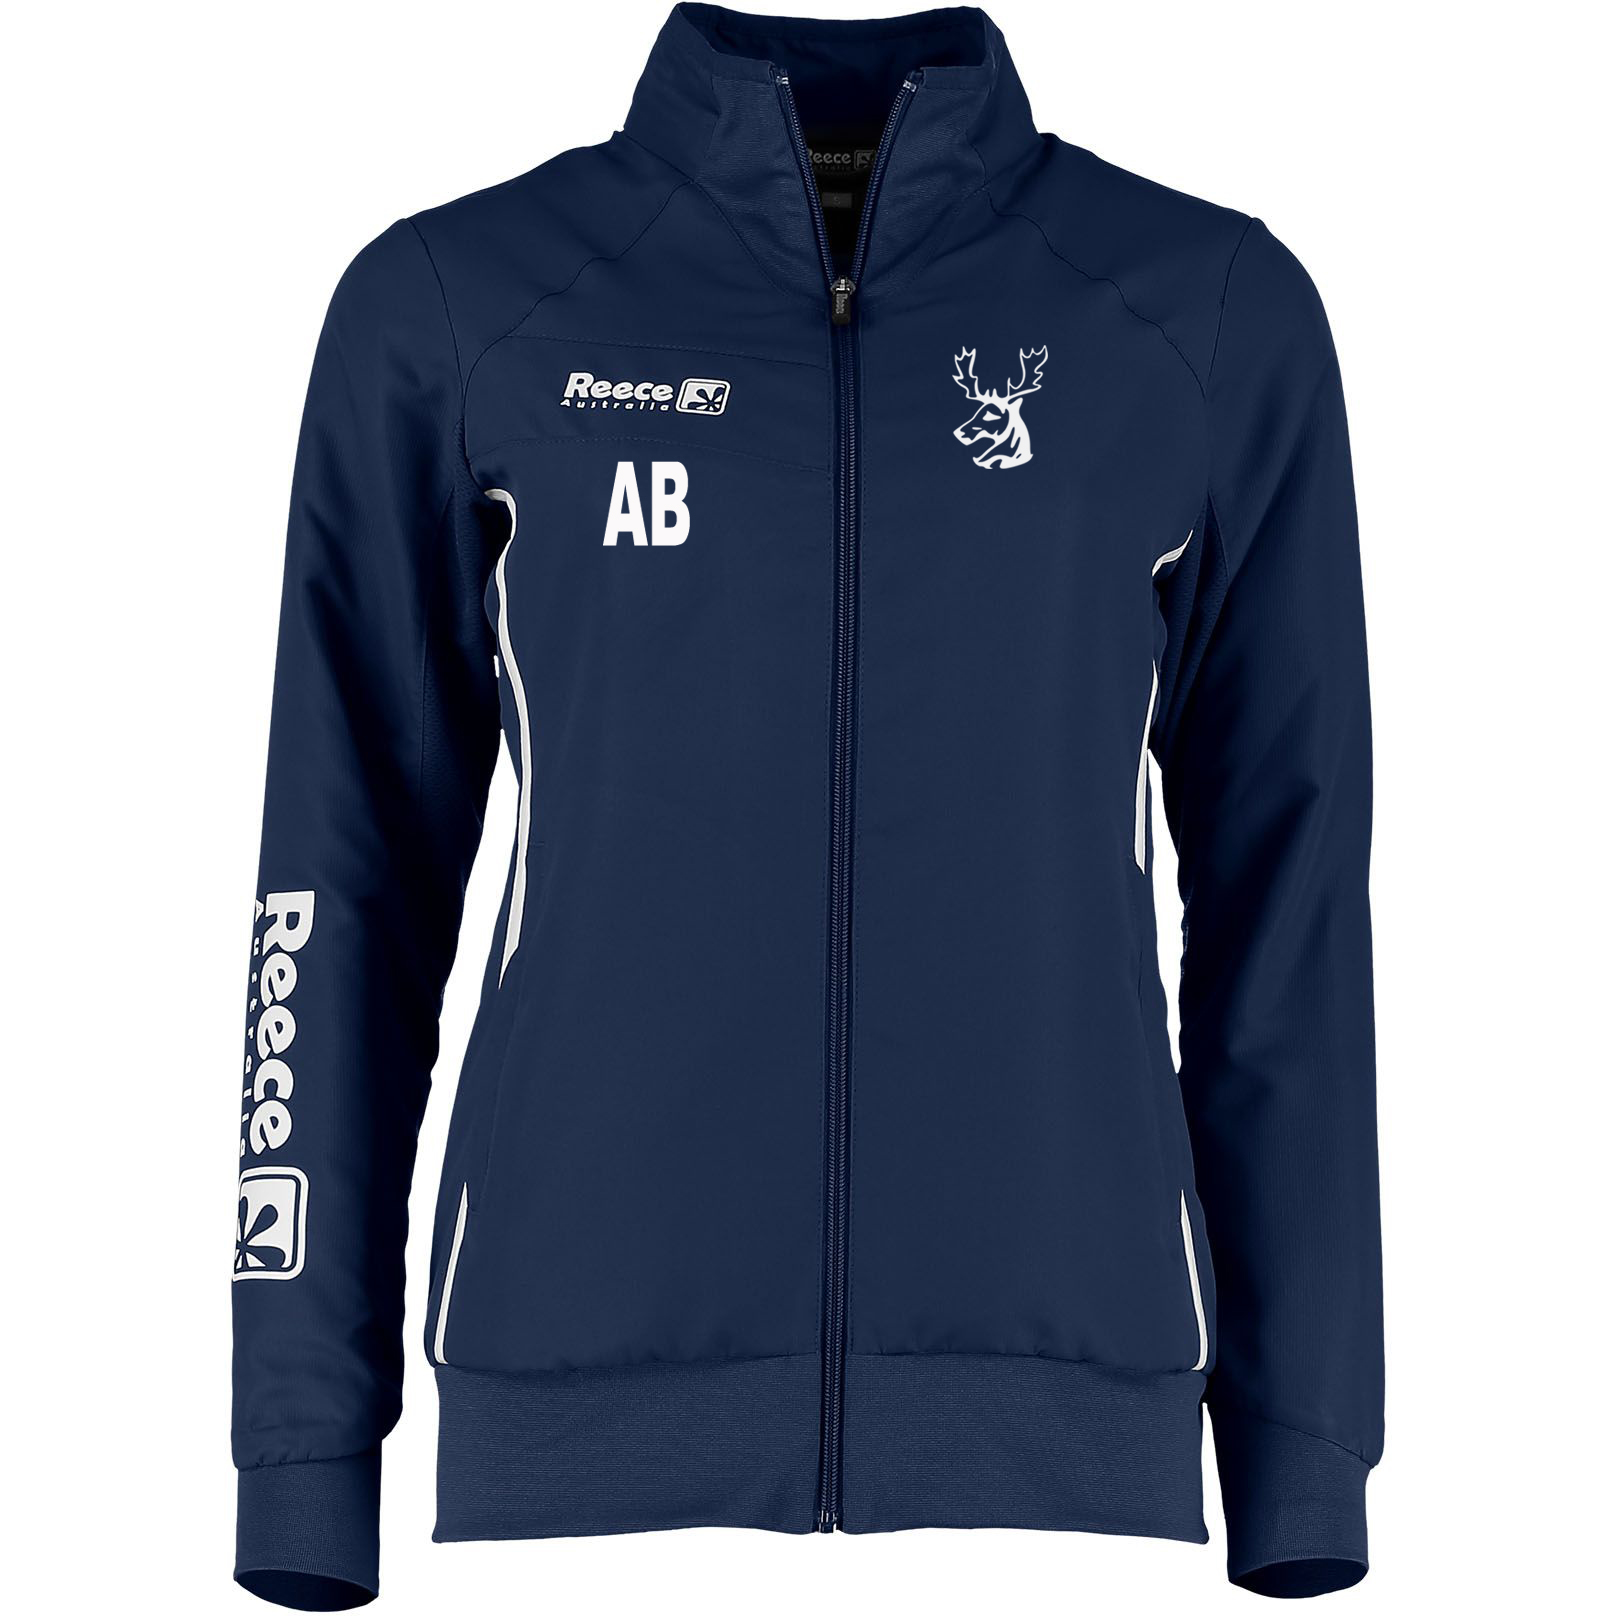 jacket-ladies-navy-initials